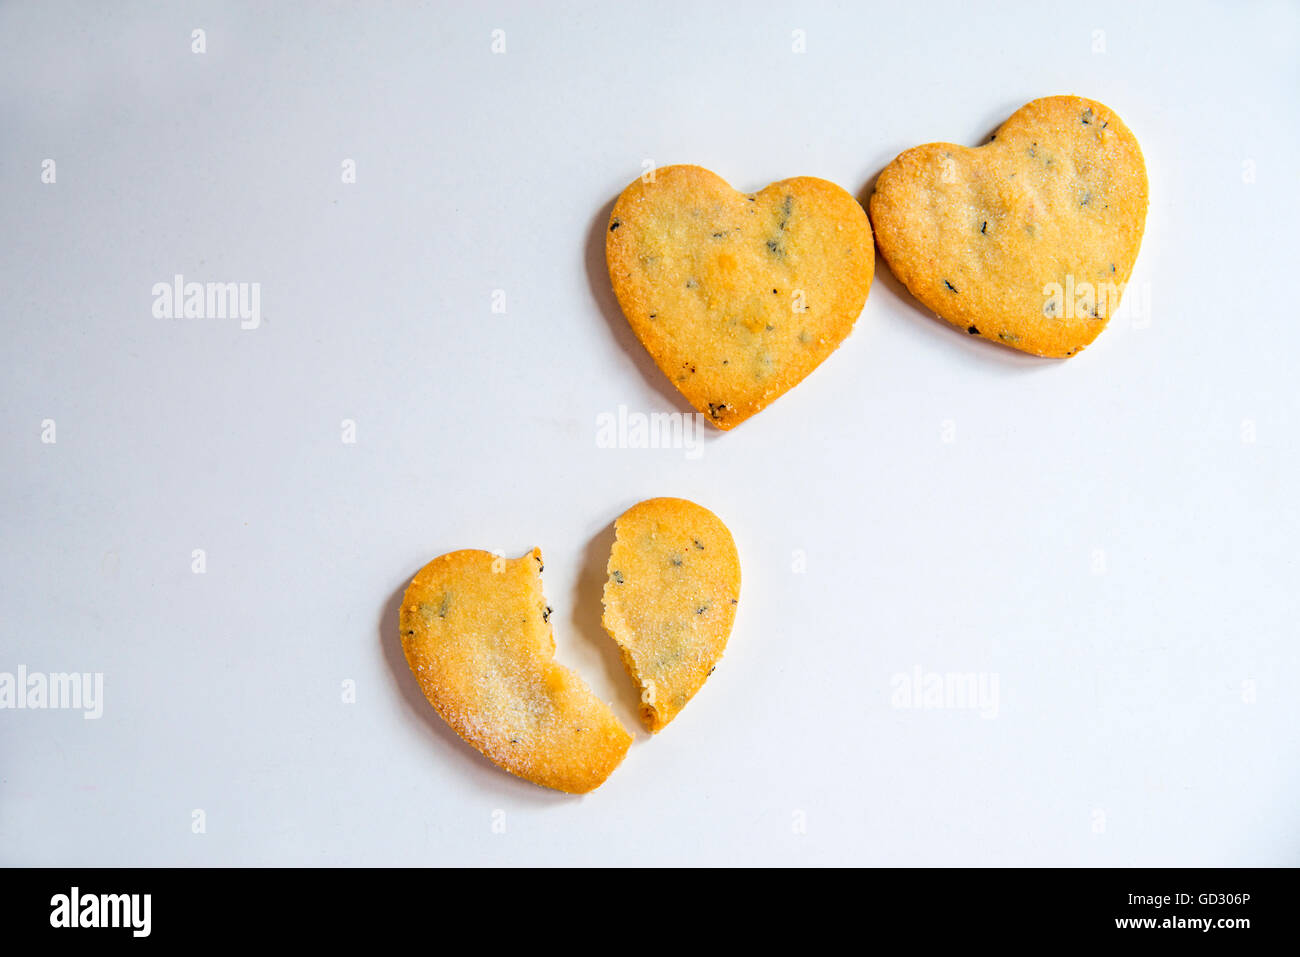 Three heart-shaped biscuits, one of them broken in two pieces. - Stock Image